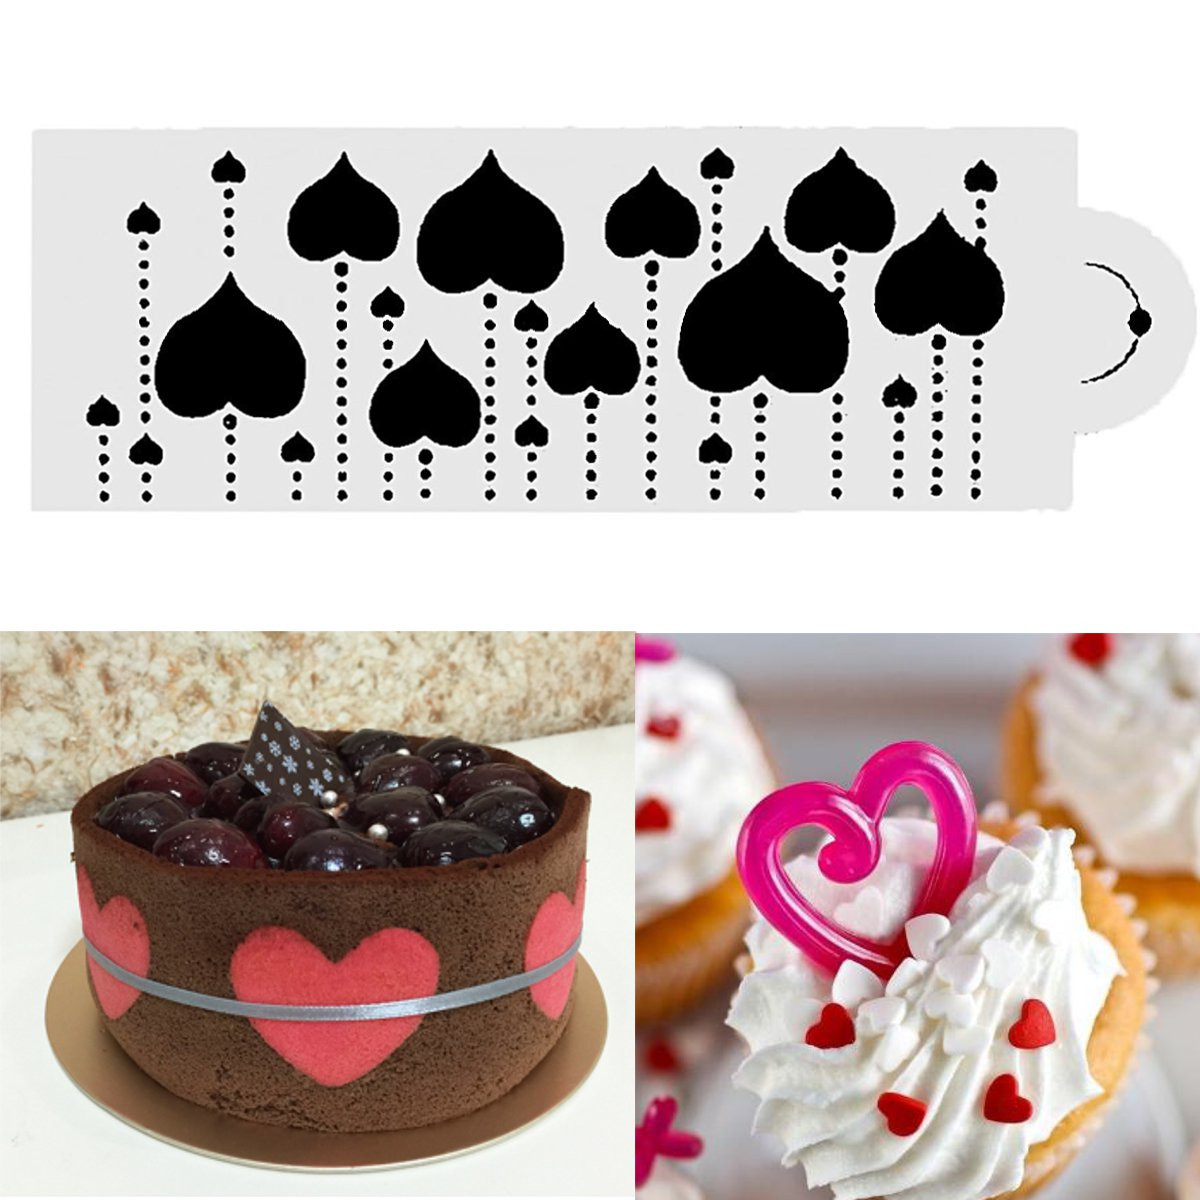 Cake Decorating Supplies Online Shop